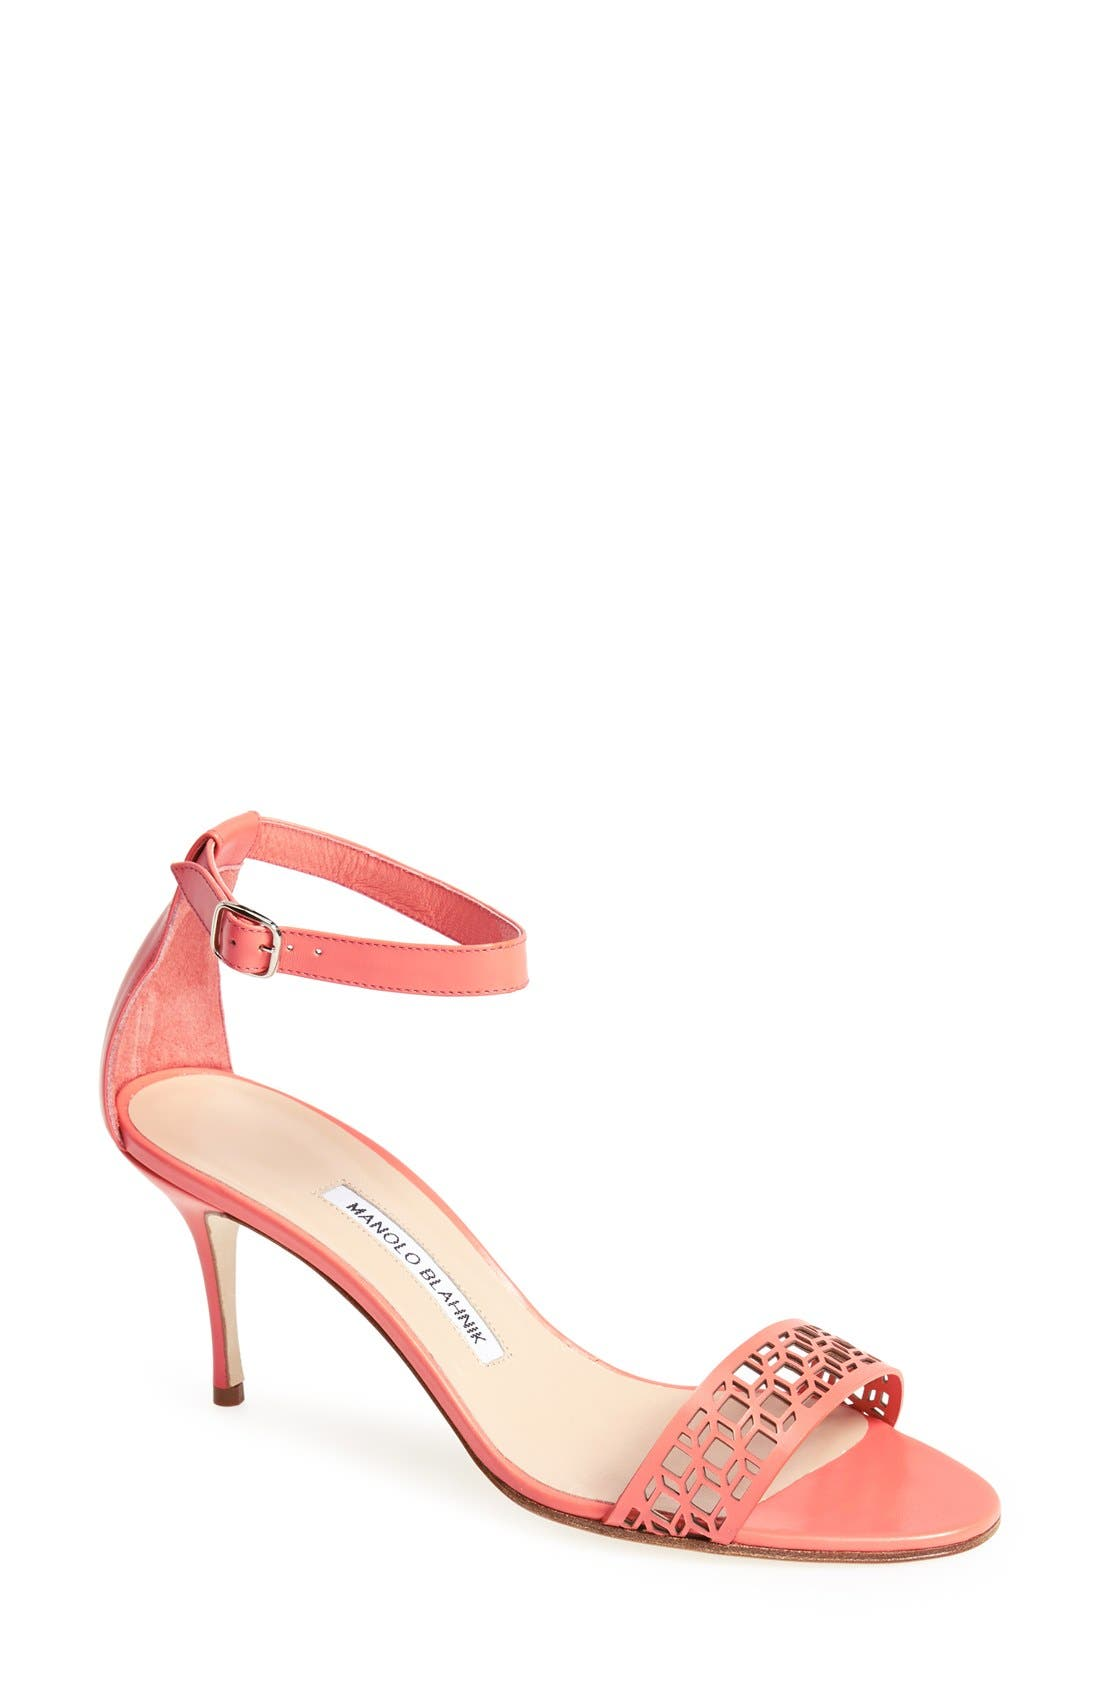 Main Image - Manolo Blahnik 'Maurila' Leather Ankle Strap Sandal (Women)